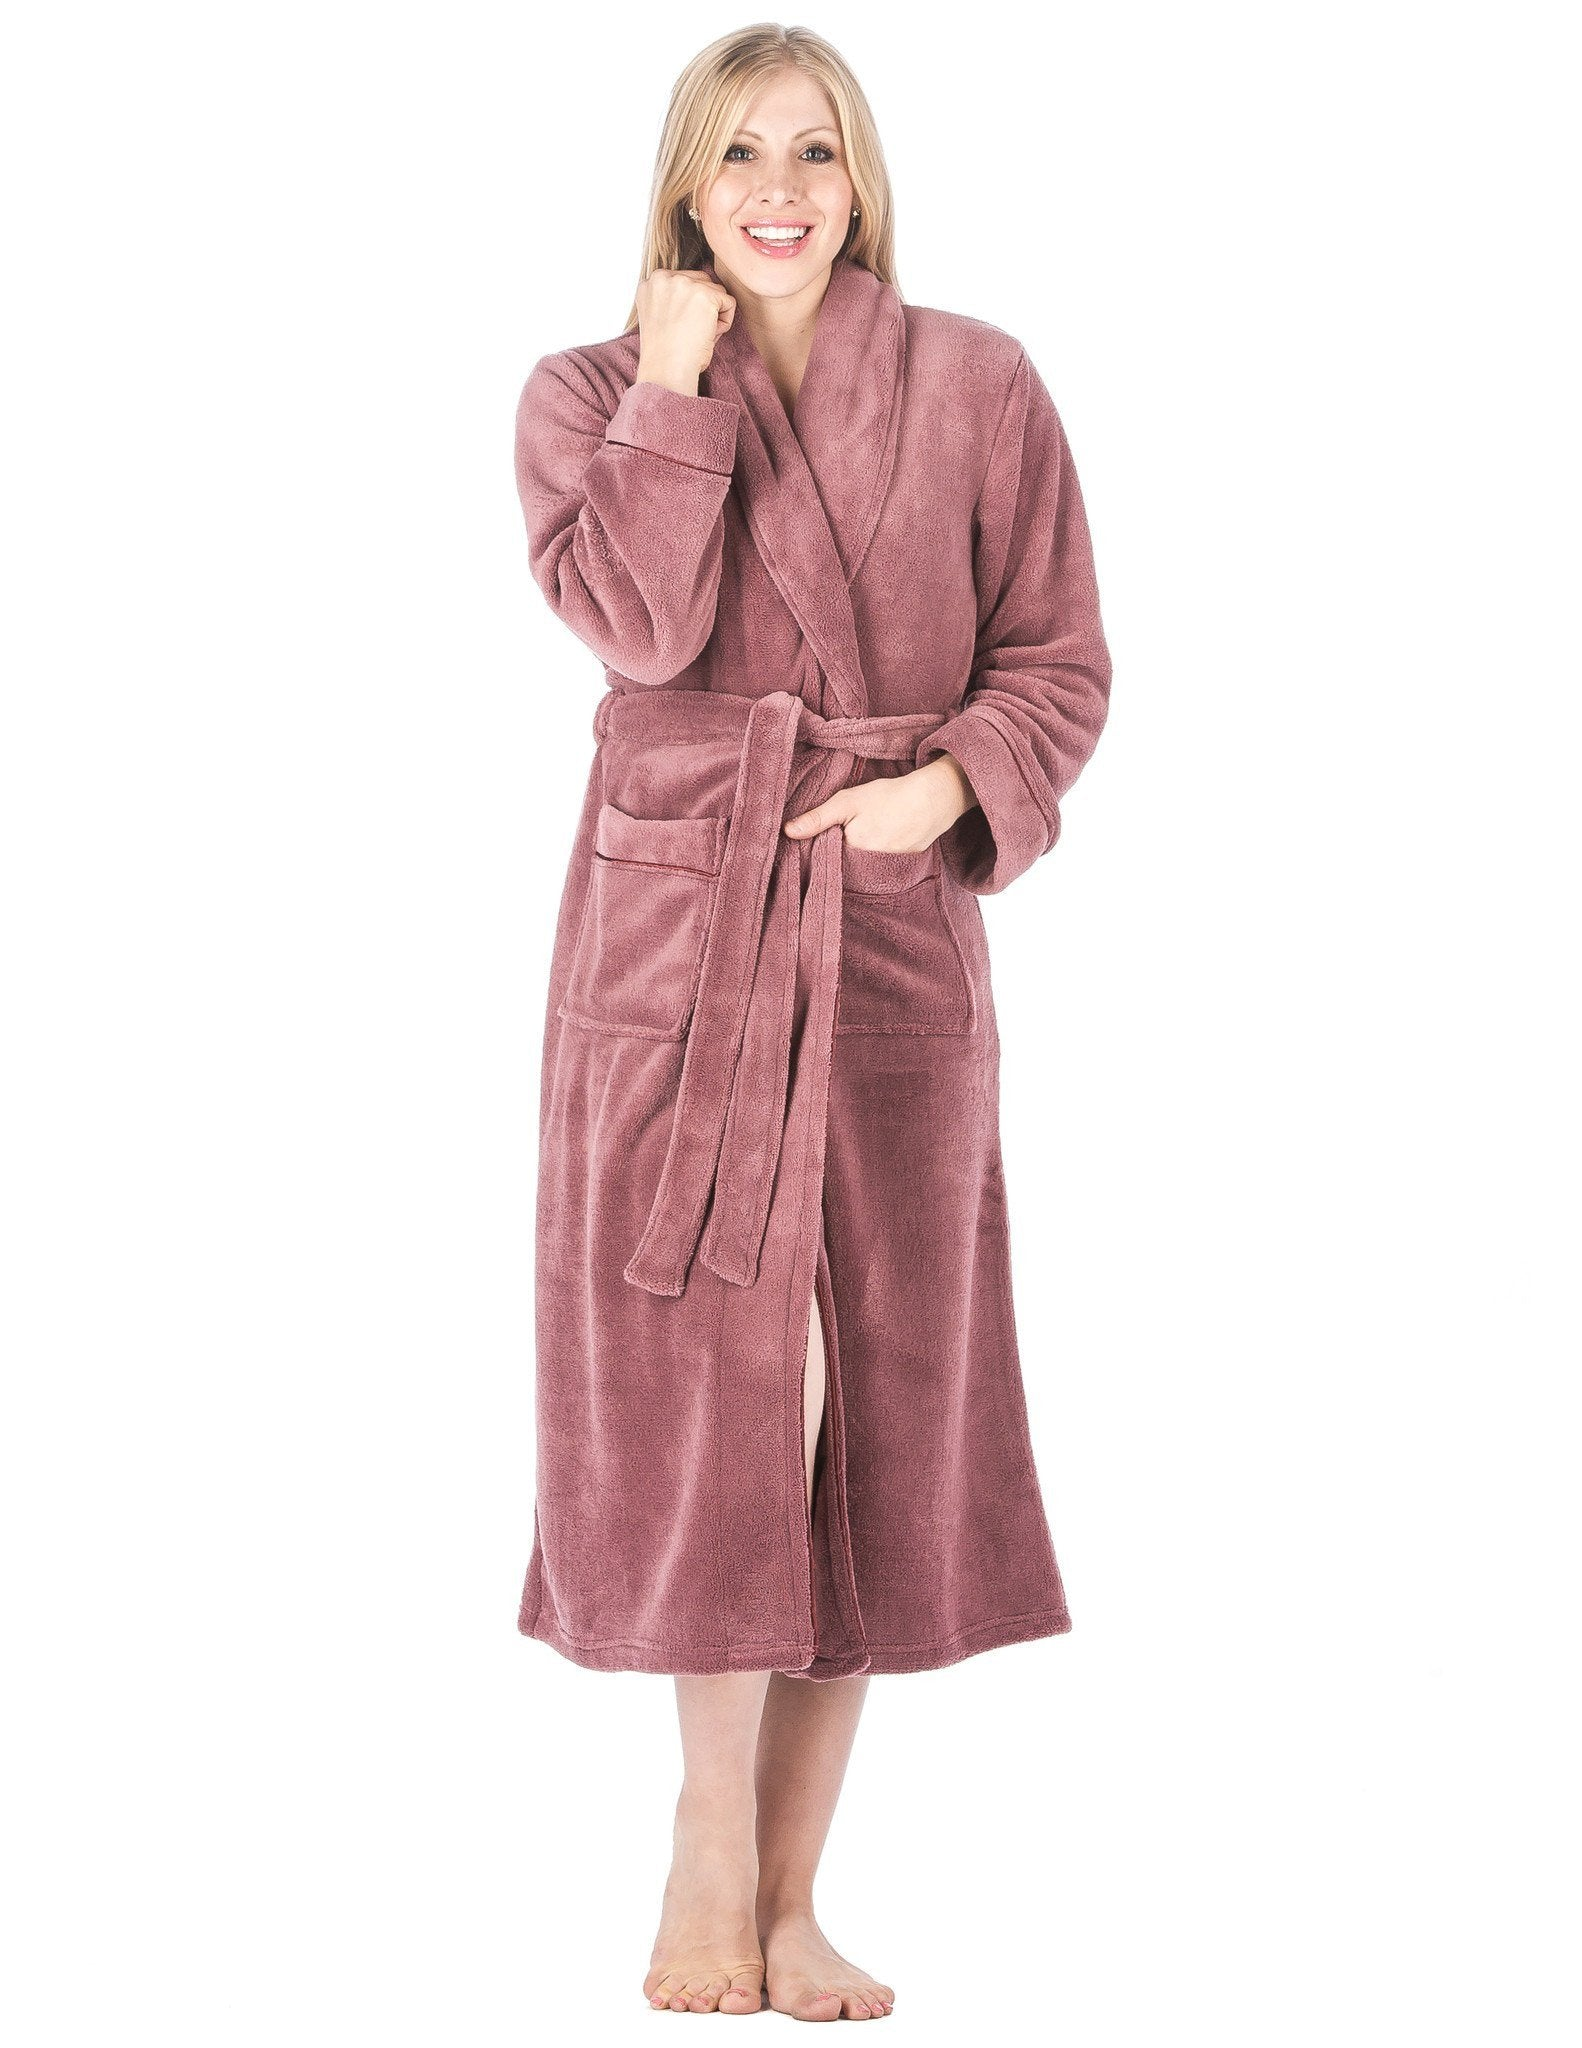 Women's Premium Coral Fleece Plush Spa/Bath Robe - Mauve